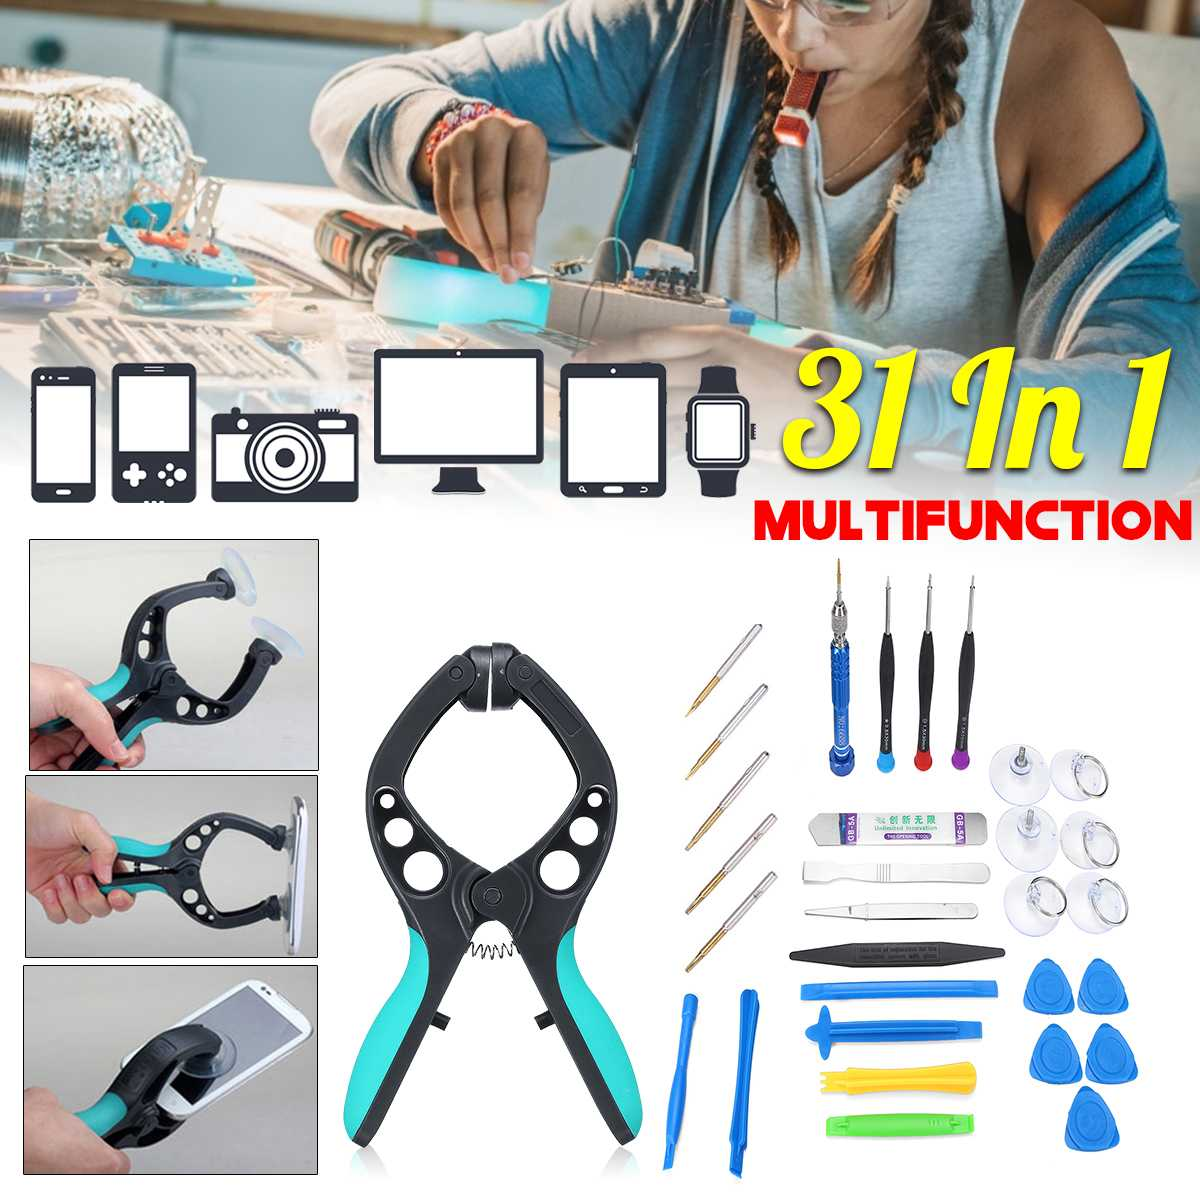 31In1 For IPhone PC Mobile Phone Screen LCD Opening Repair Tool Kit Screwdriver Repairing Opining Installing Professional31In1 For IPhone PC Mobile Phone Screen LCD Opening Repair Tool Kit Screwdriver Repairing Opining Installing Professional